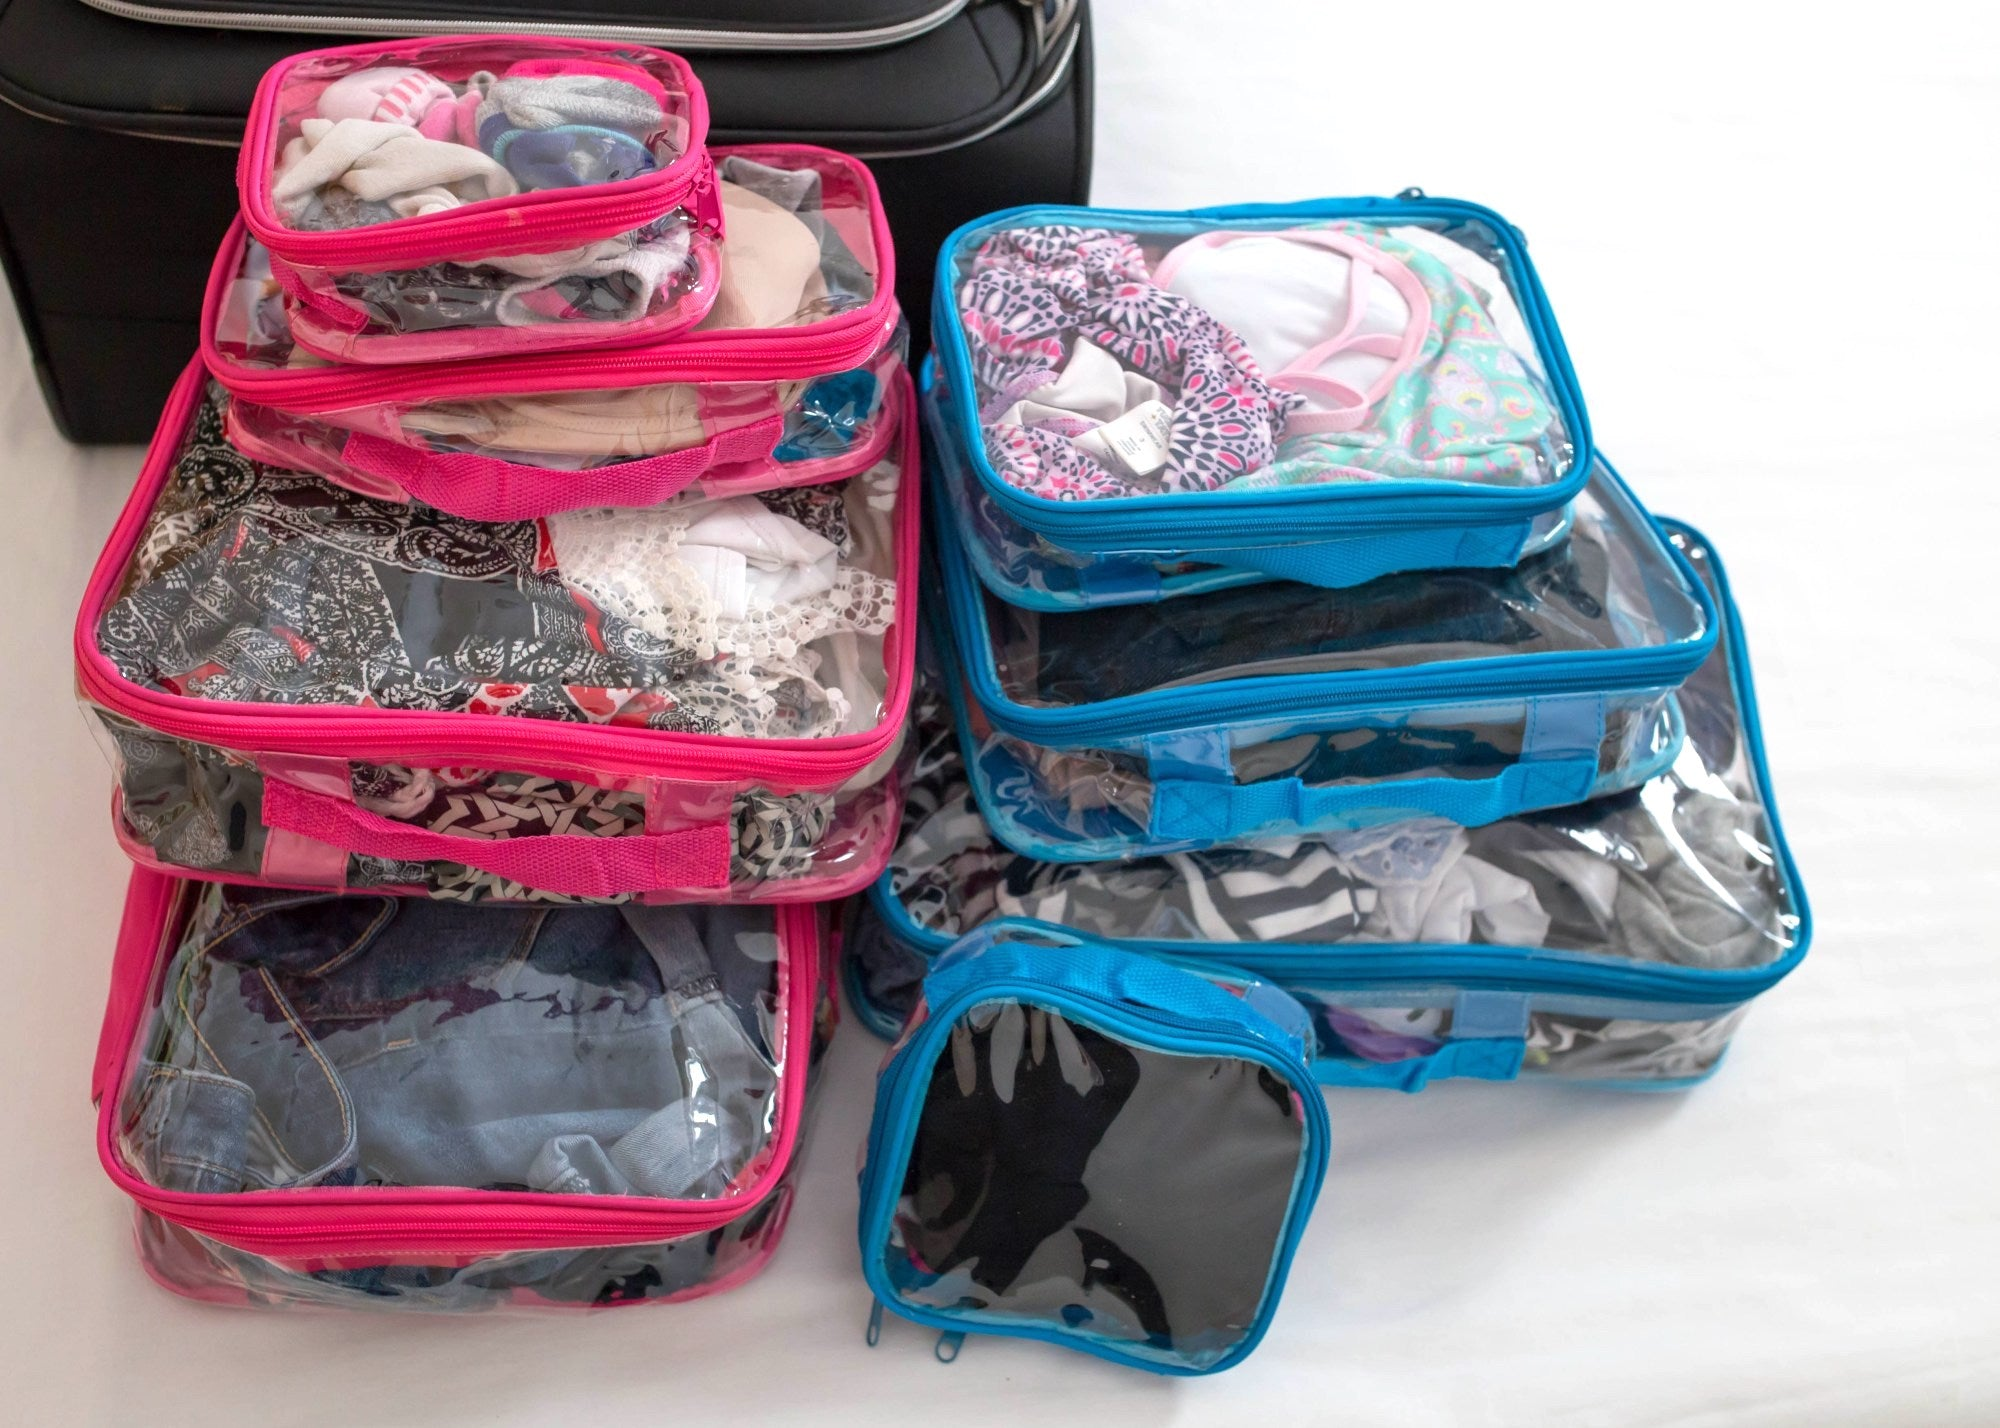 A set of pink and blue clear packing cubes for travel